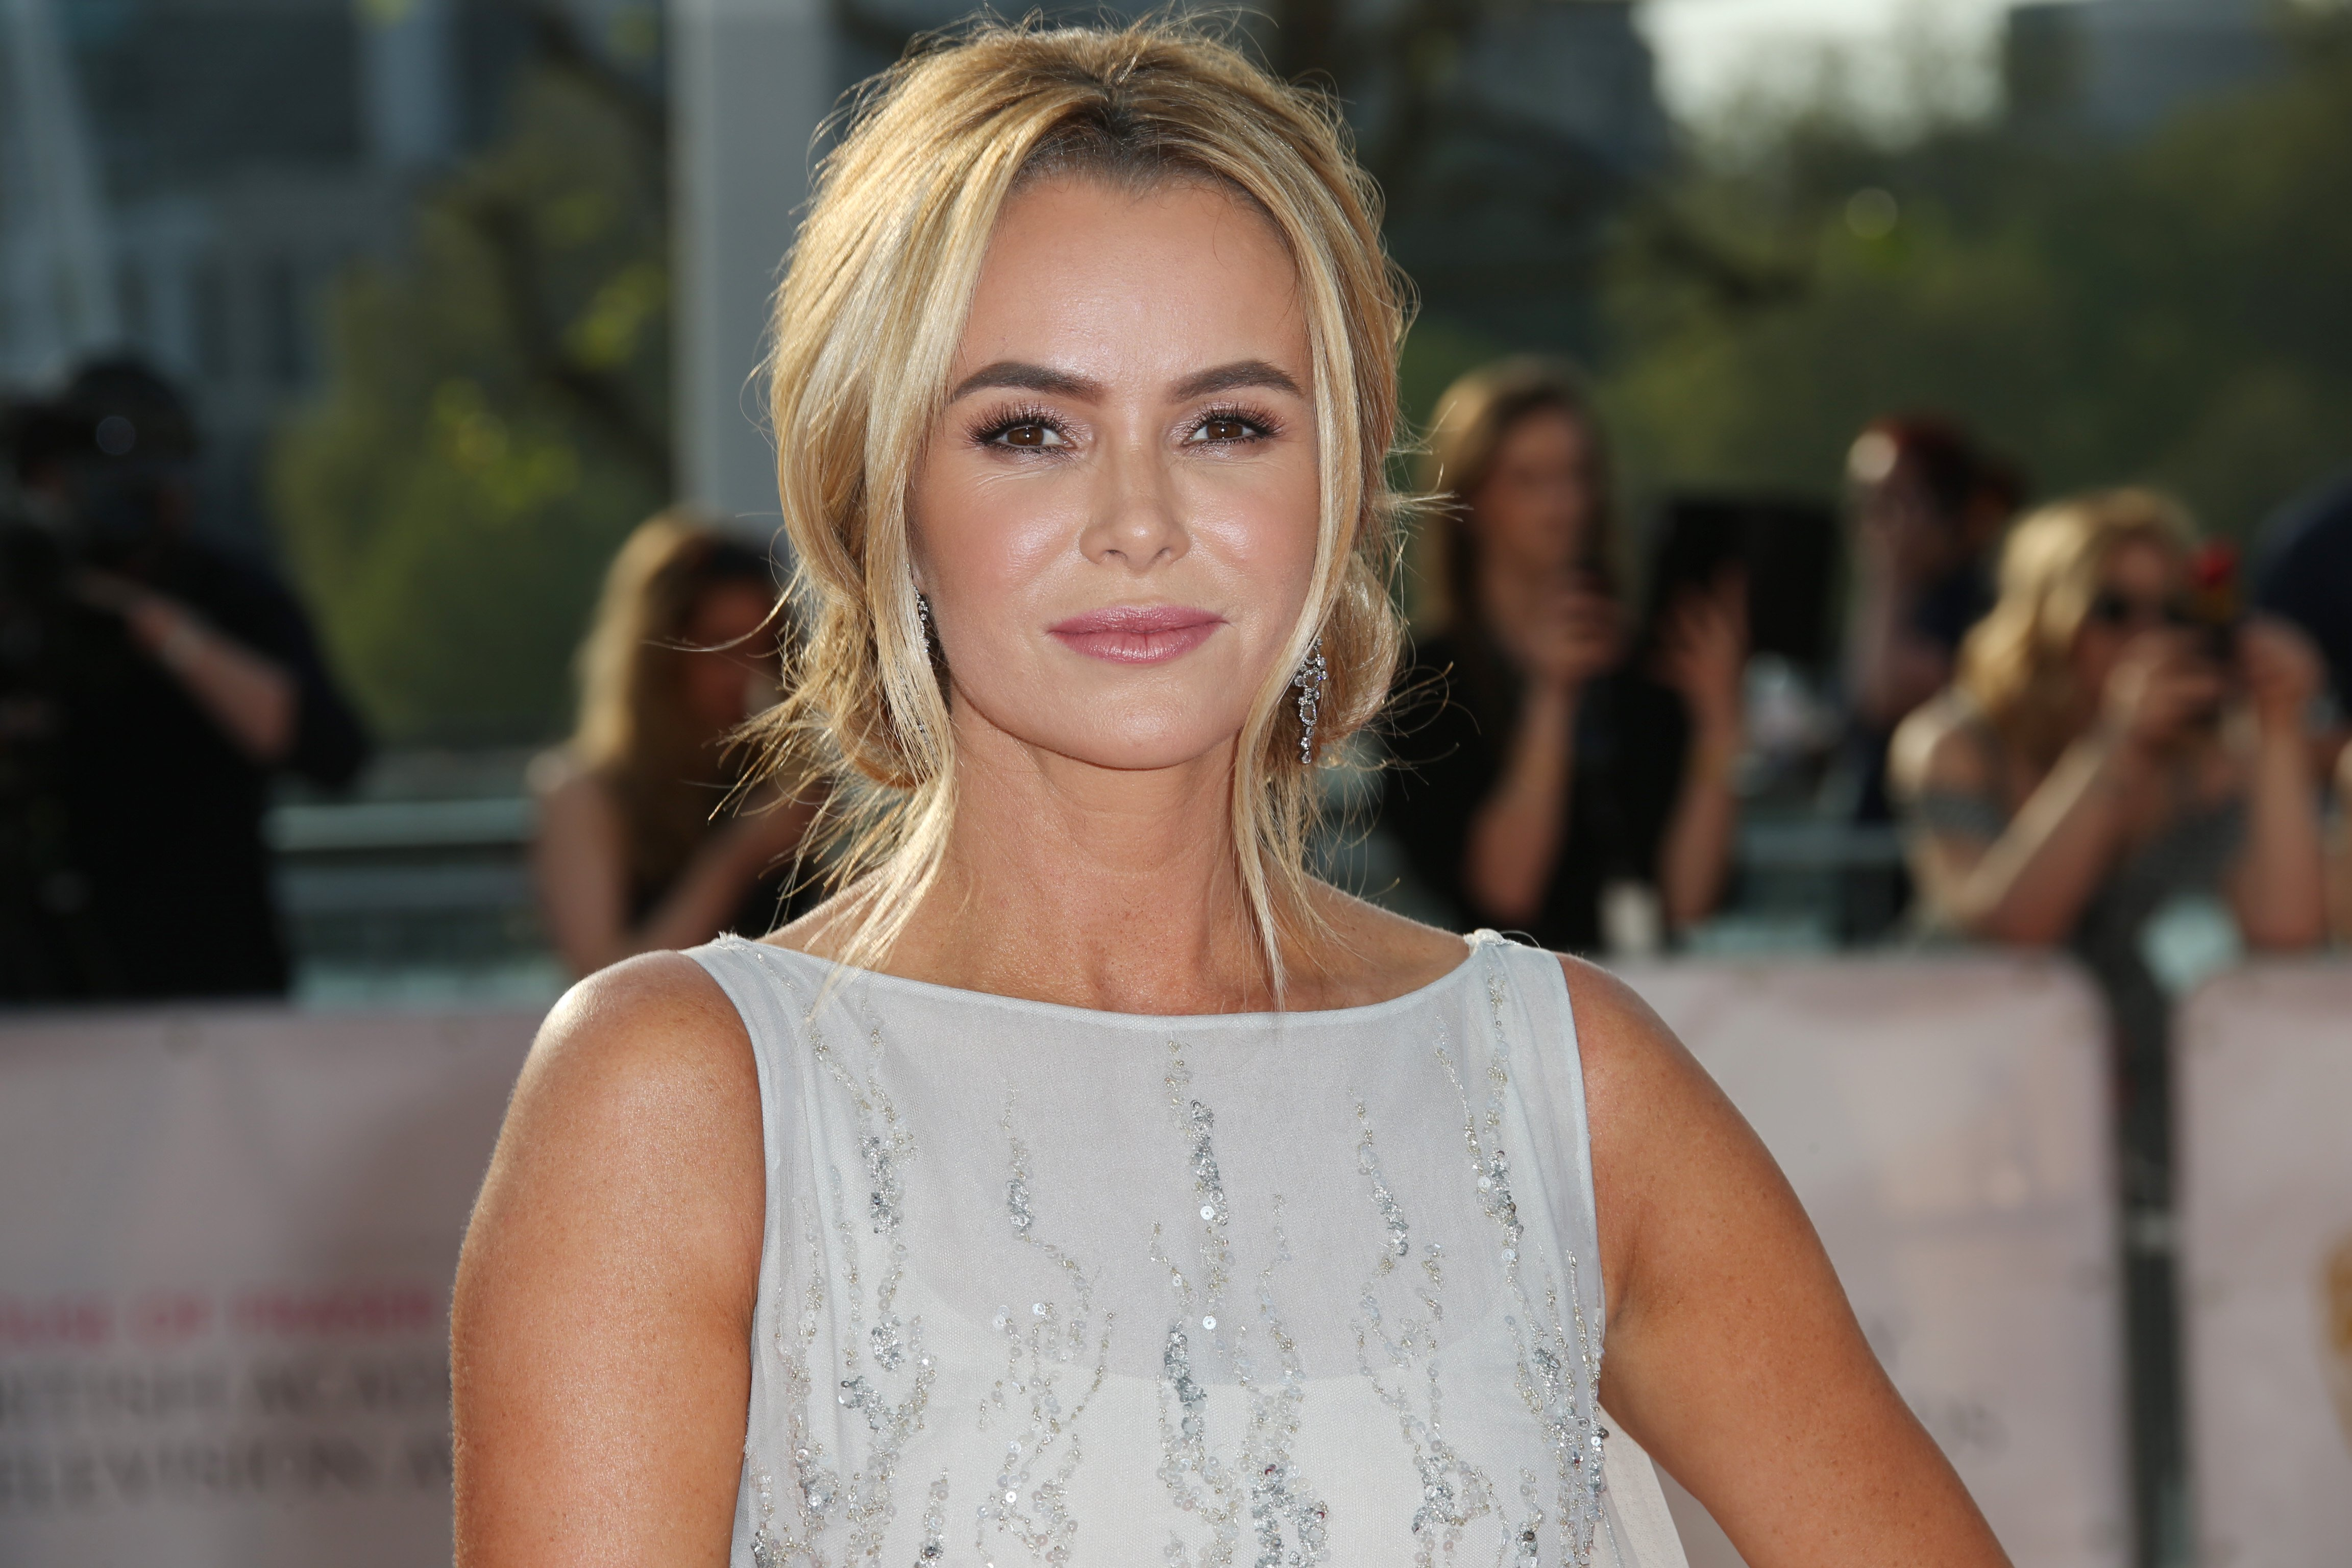 Amanda Holden Forced To Delete This Bikini Shot After Photoshop Accusations PA 26272317